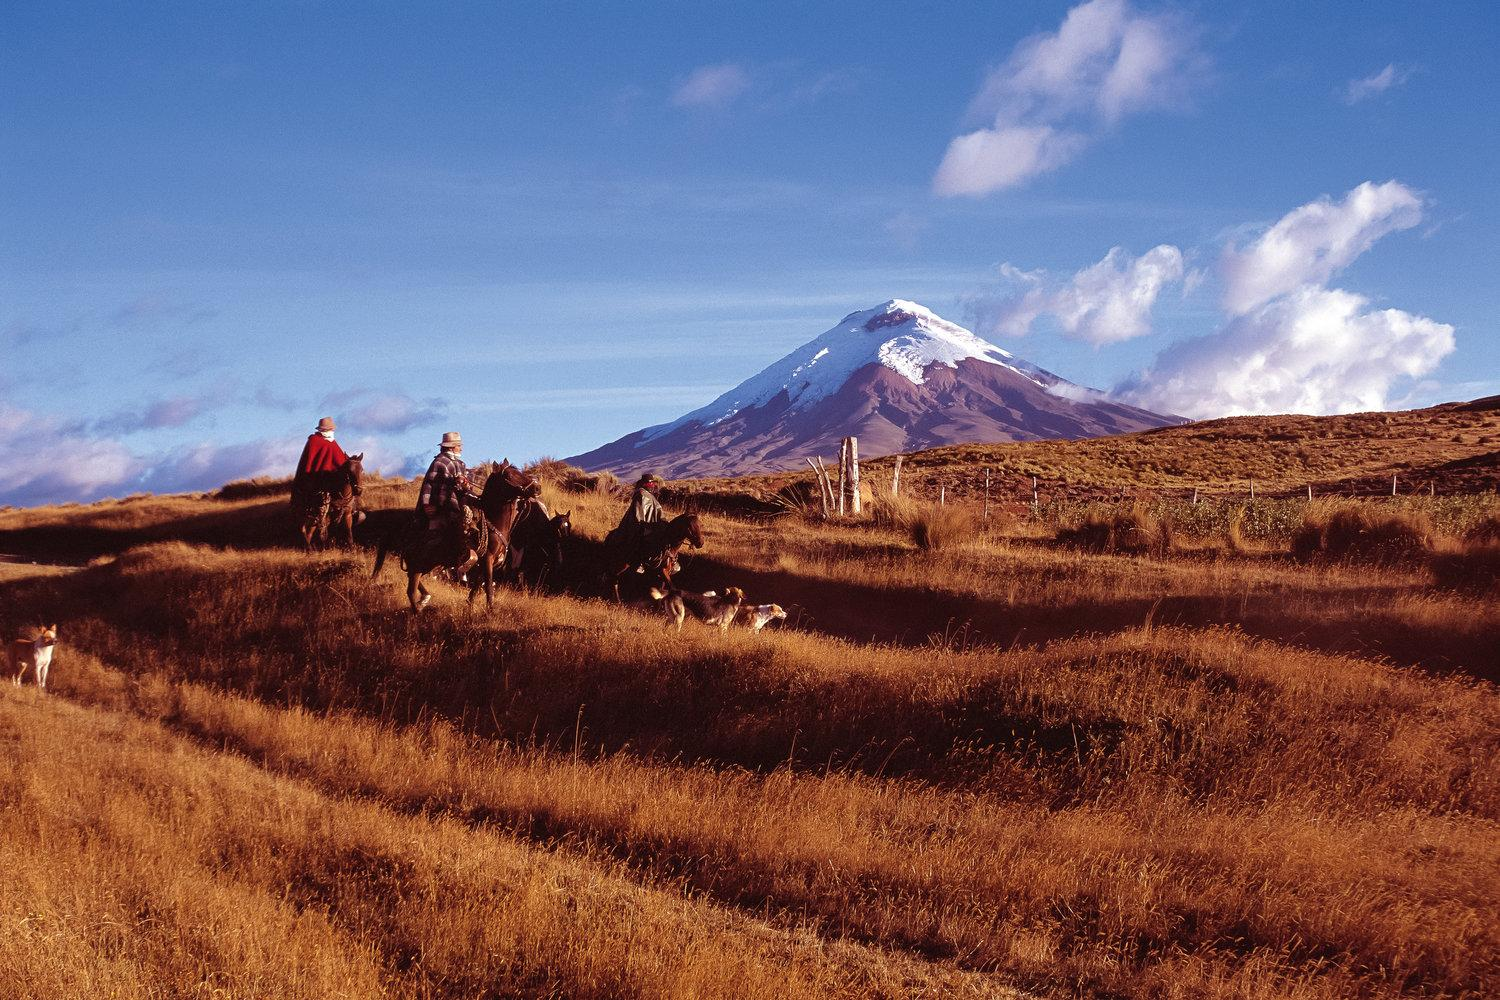 Hike through Ecuador's Avenue of the Volcanoes within the Andean Highlands and Cotopaxi National Par